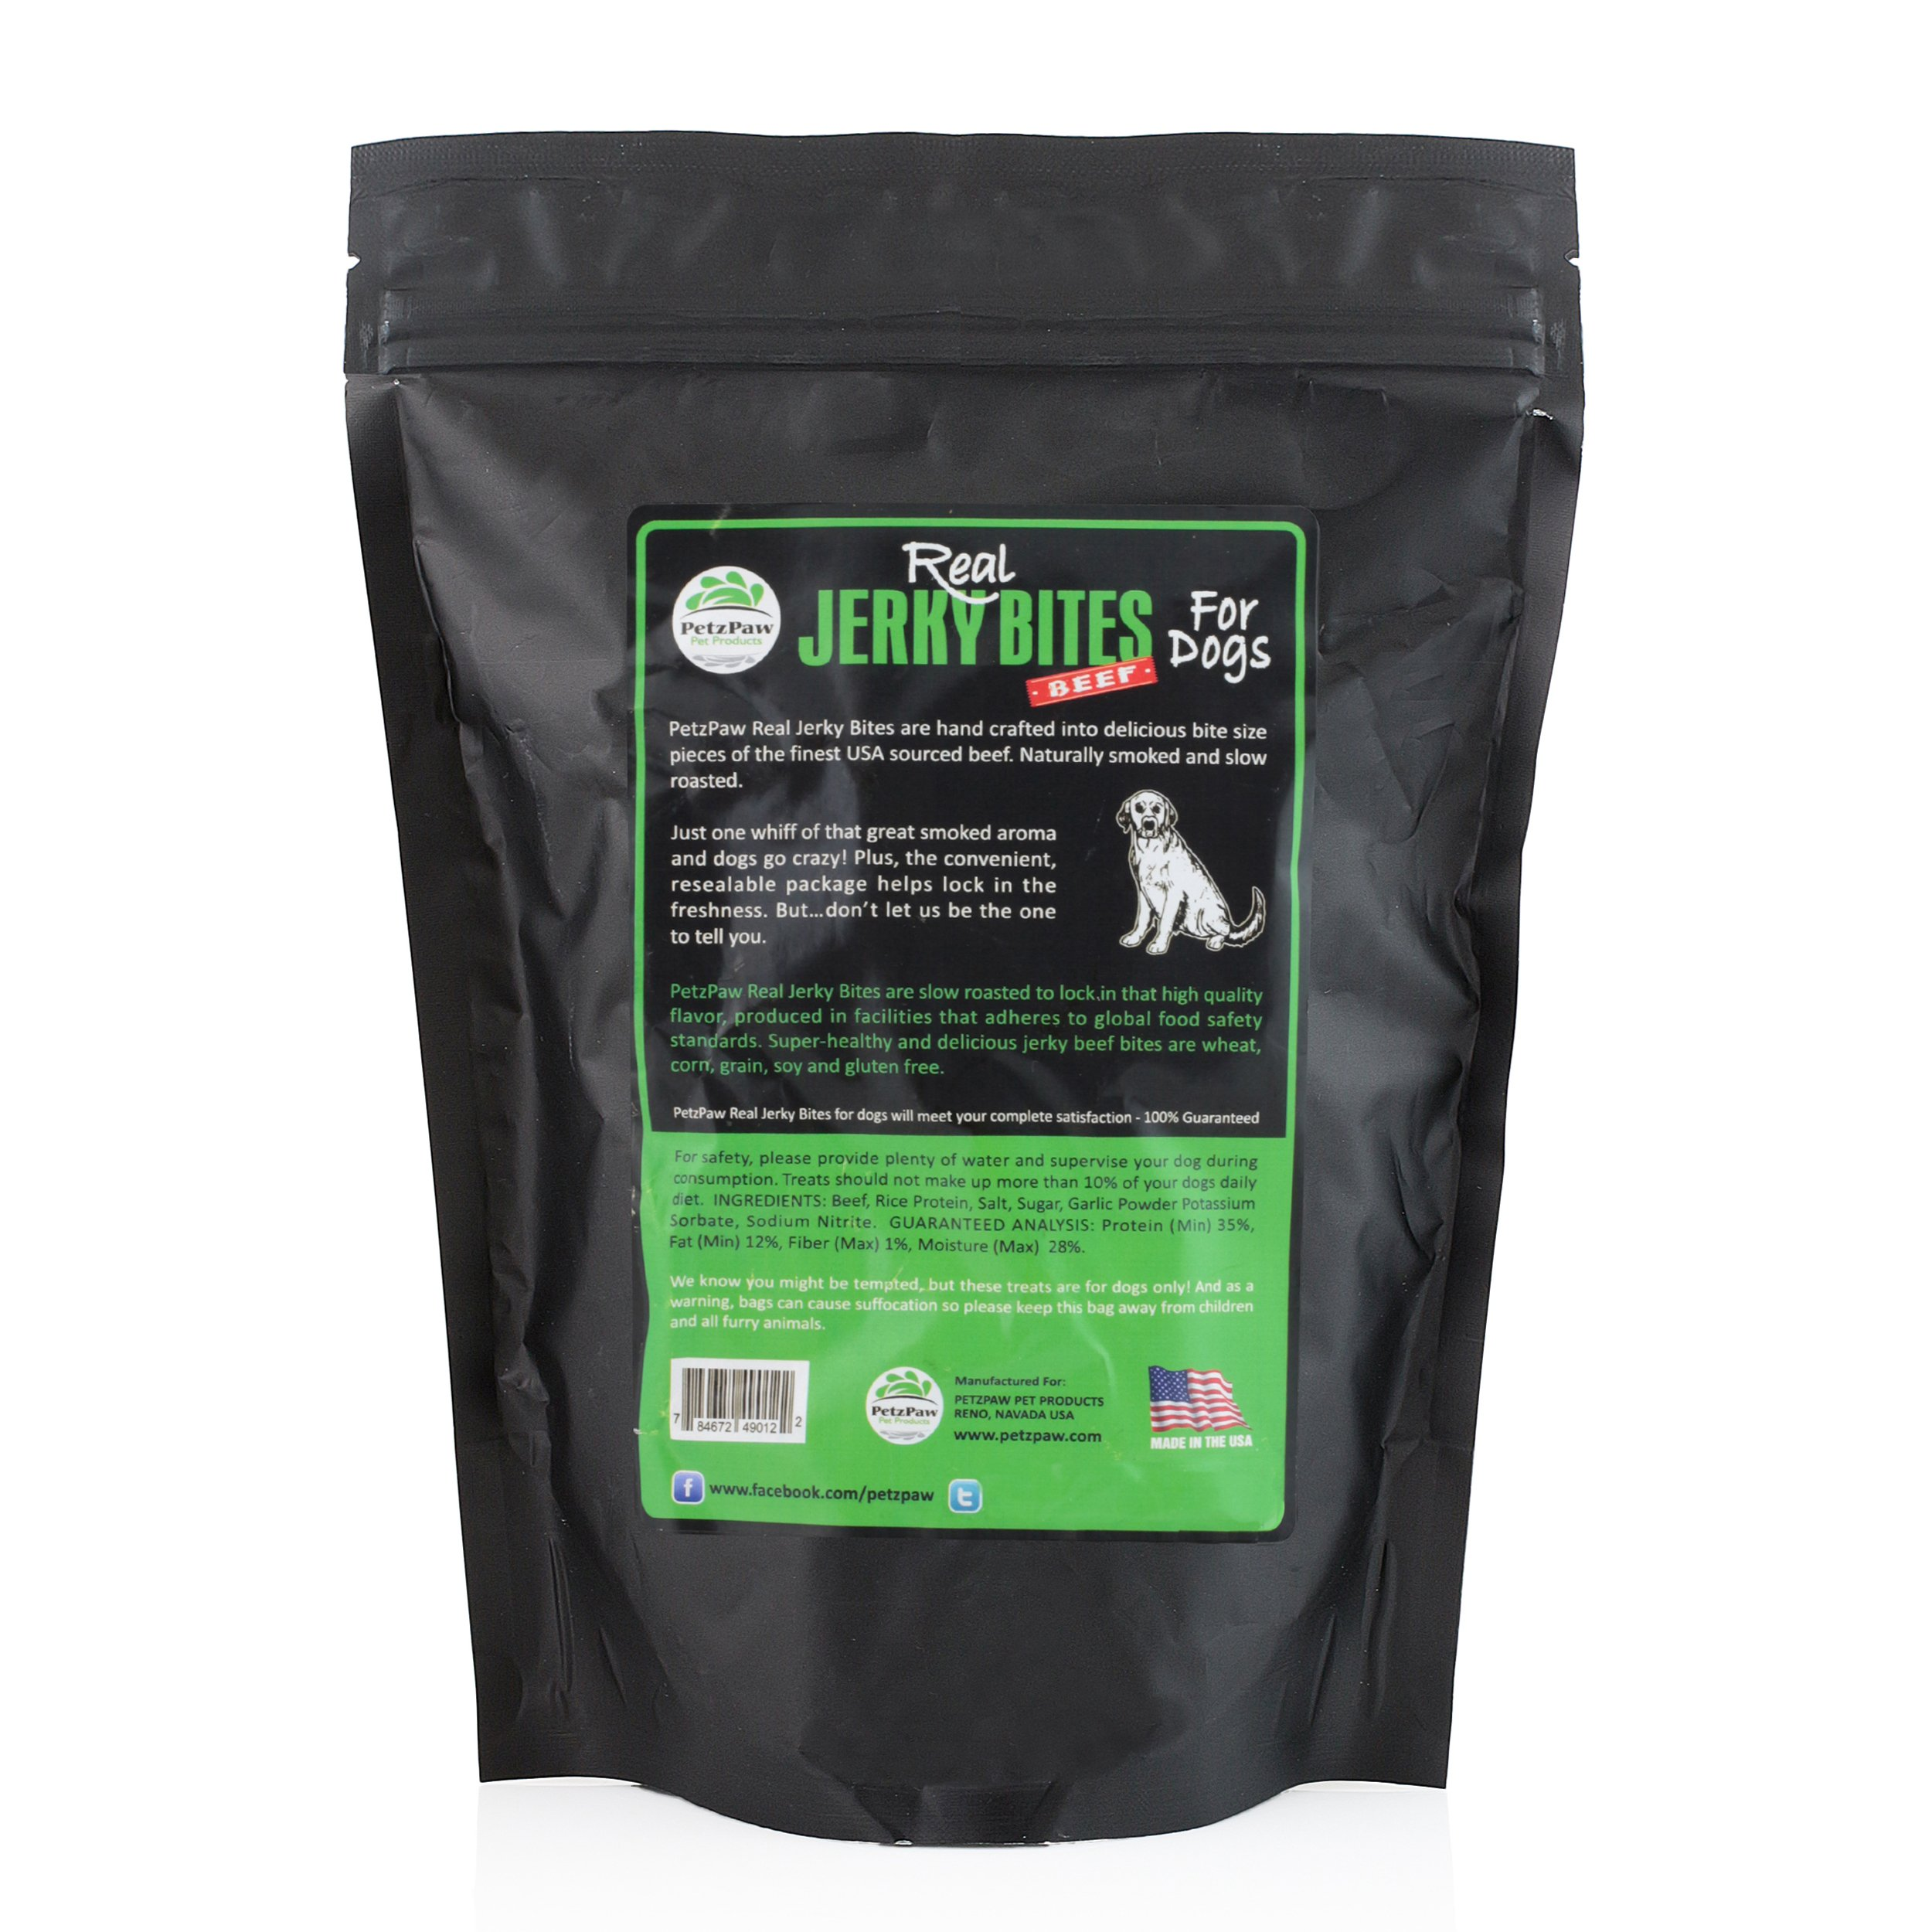 Beef Jerky Dog Treats - Natural Made in the USA - Pet Training Treat by PetzPaw Pet Products (Image #3)